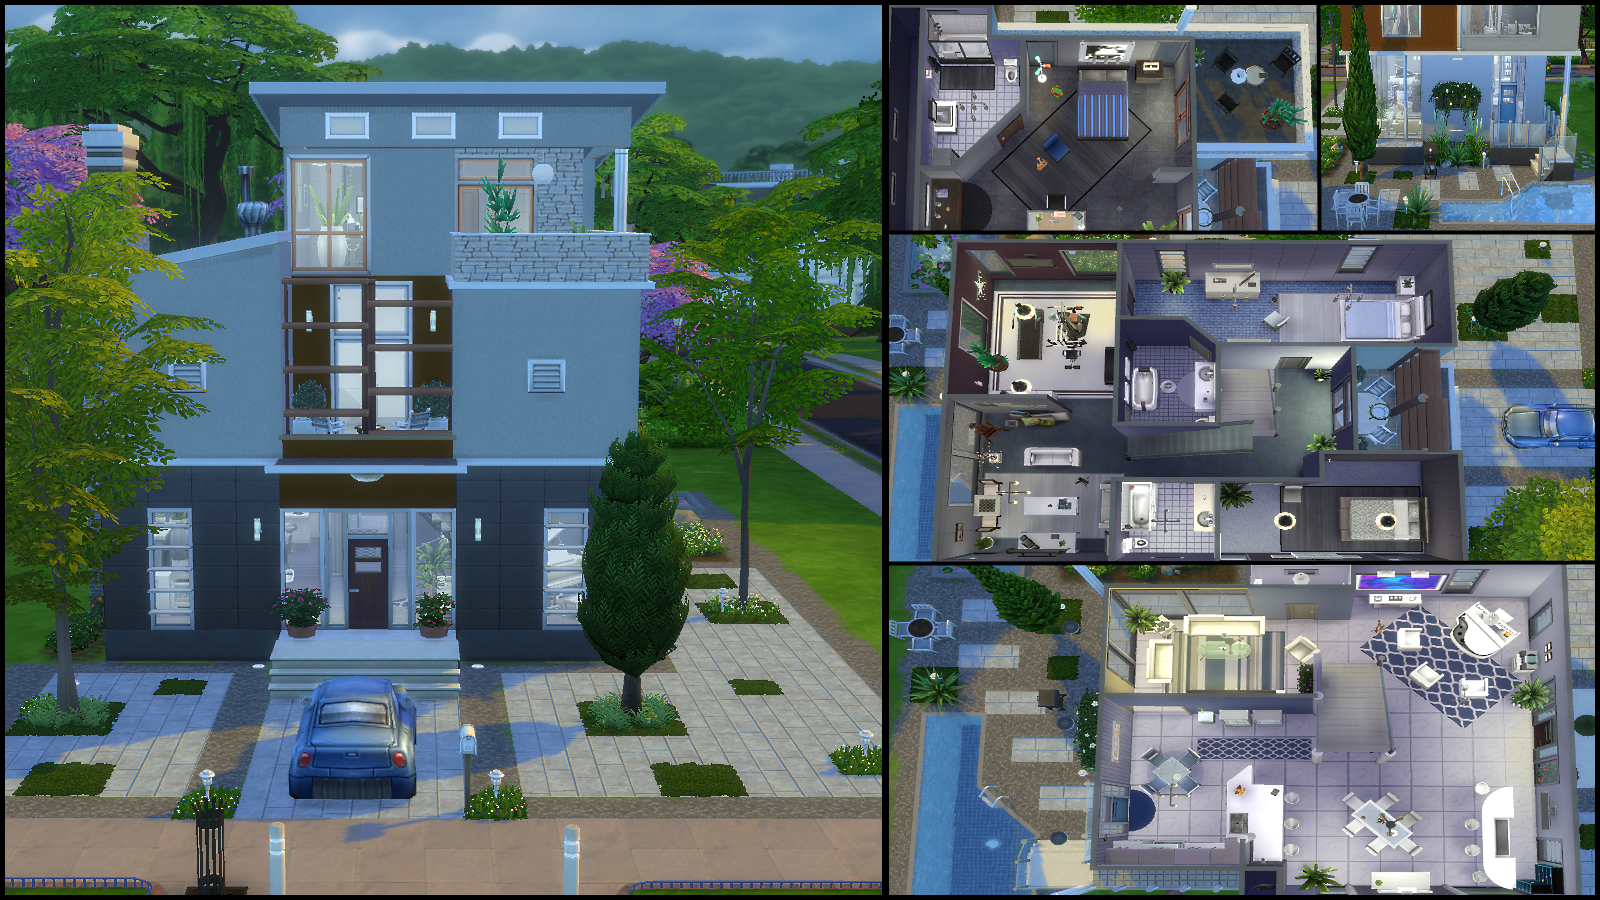 The sims 4 simple house design modern design for Mansion floor plans sims 4